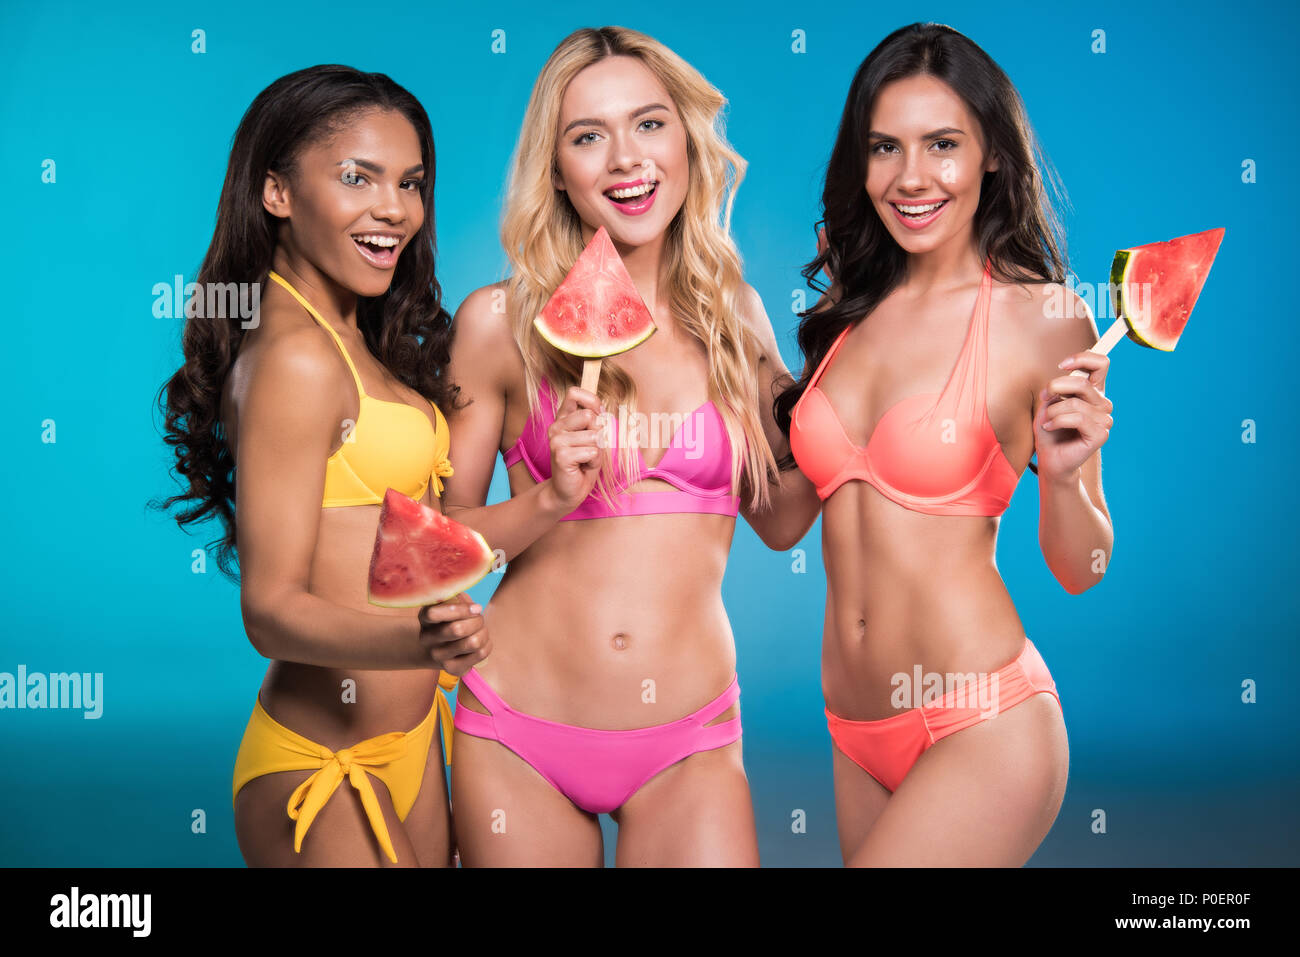 a9c5d31a7f smiling multiethnic girls in swimsuits posing with watermelon slices -  Stock Image